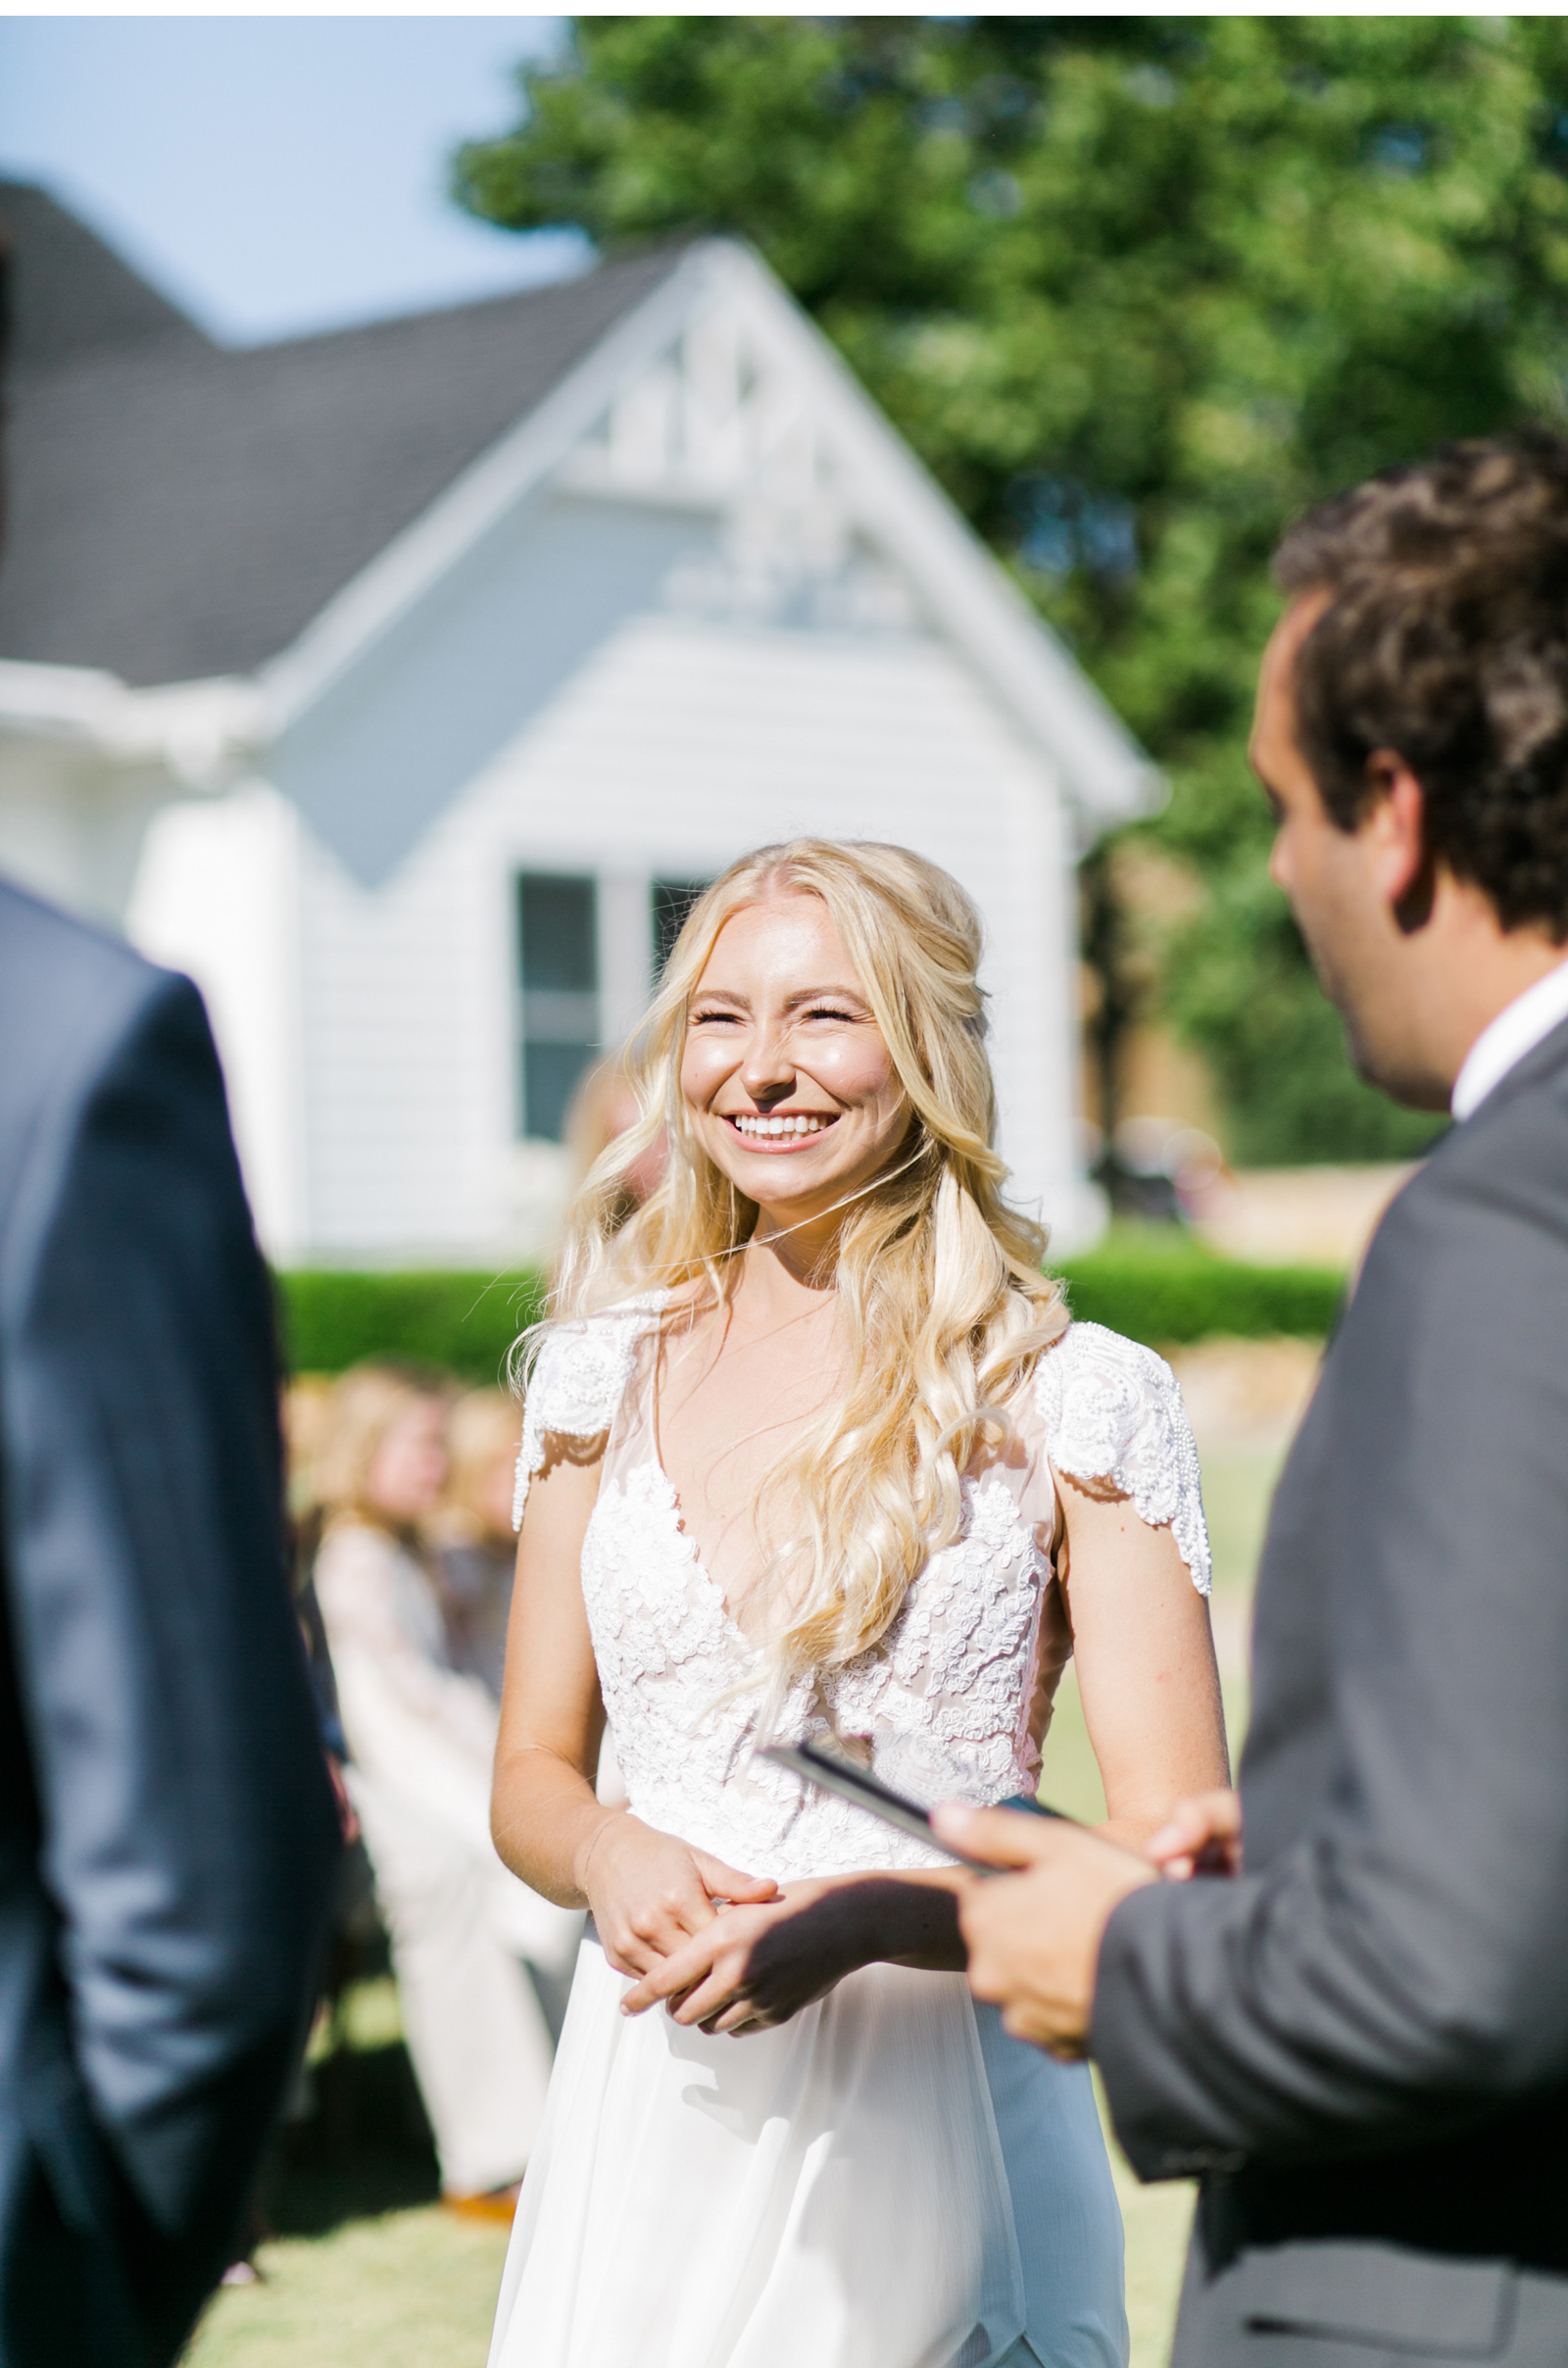 Paso-Robles-Style-Me-Pretty-The-Knot-Wedding-Natalie-Schutt-Photography's-Wedding_16.jpg